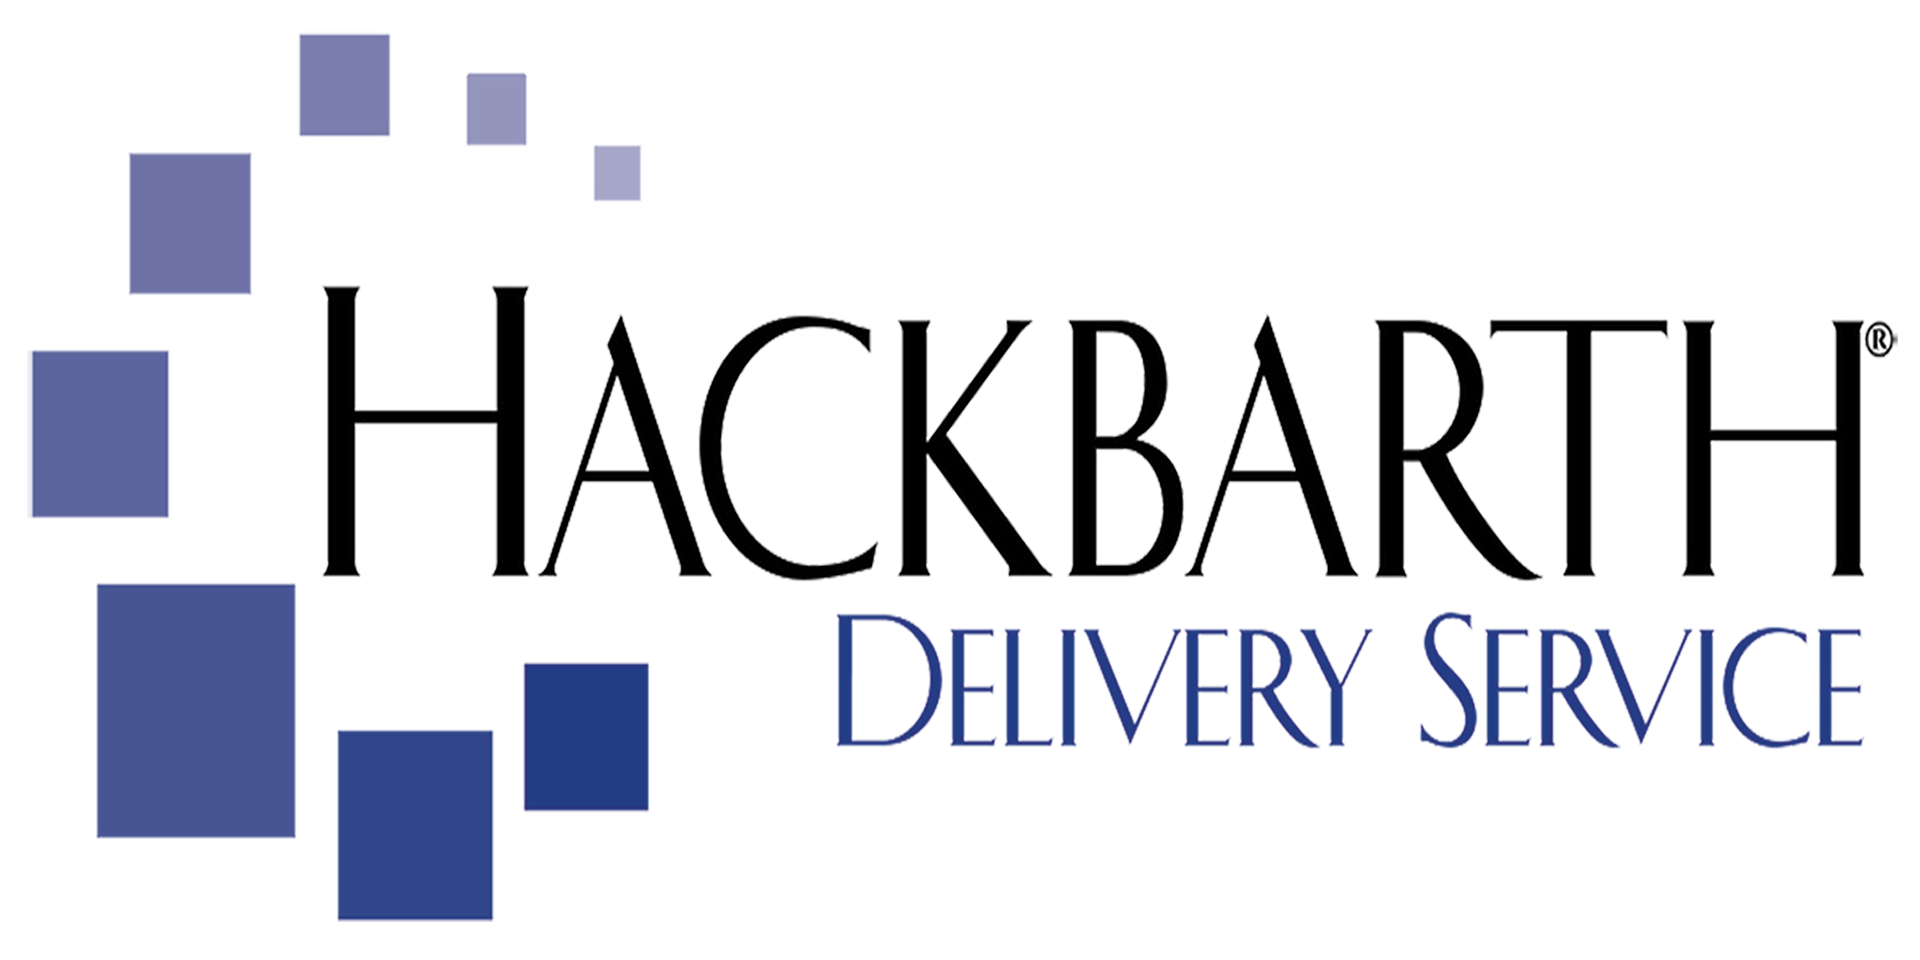 Logo for Hackbarth Delivery Service, Inc.